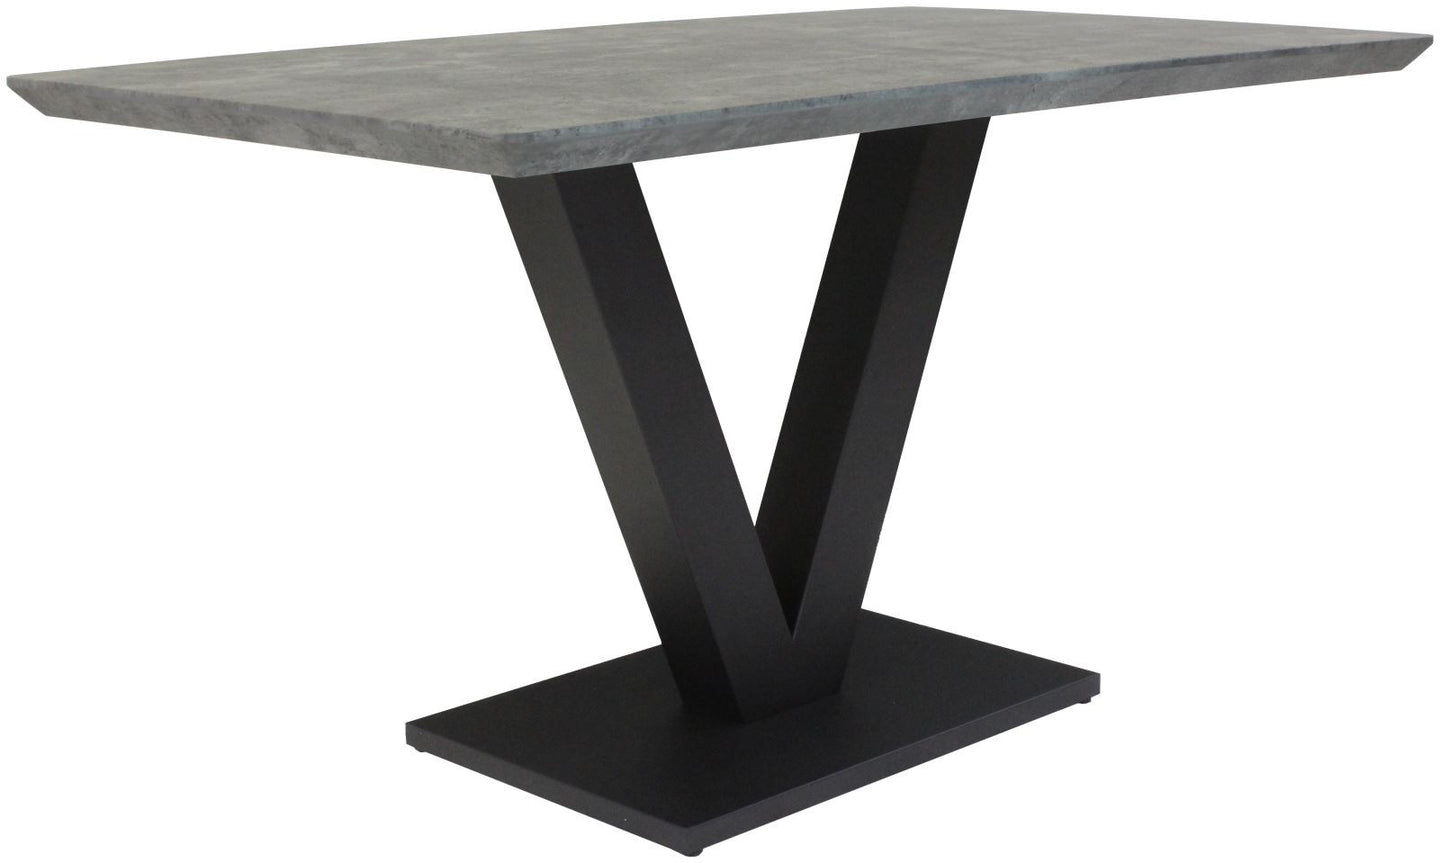 Zara Dining Table - Tetro Stone